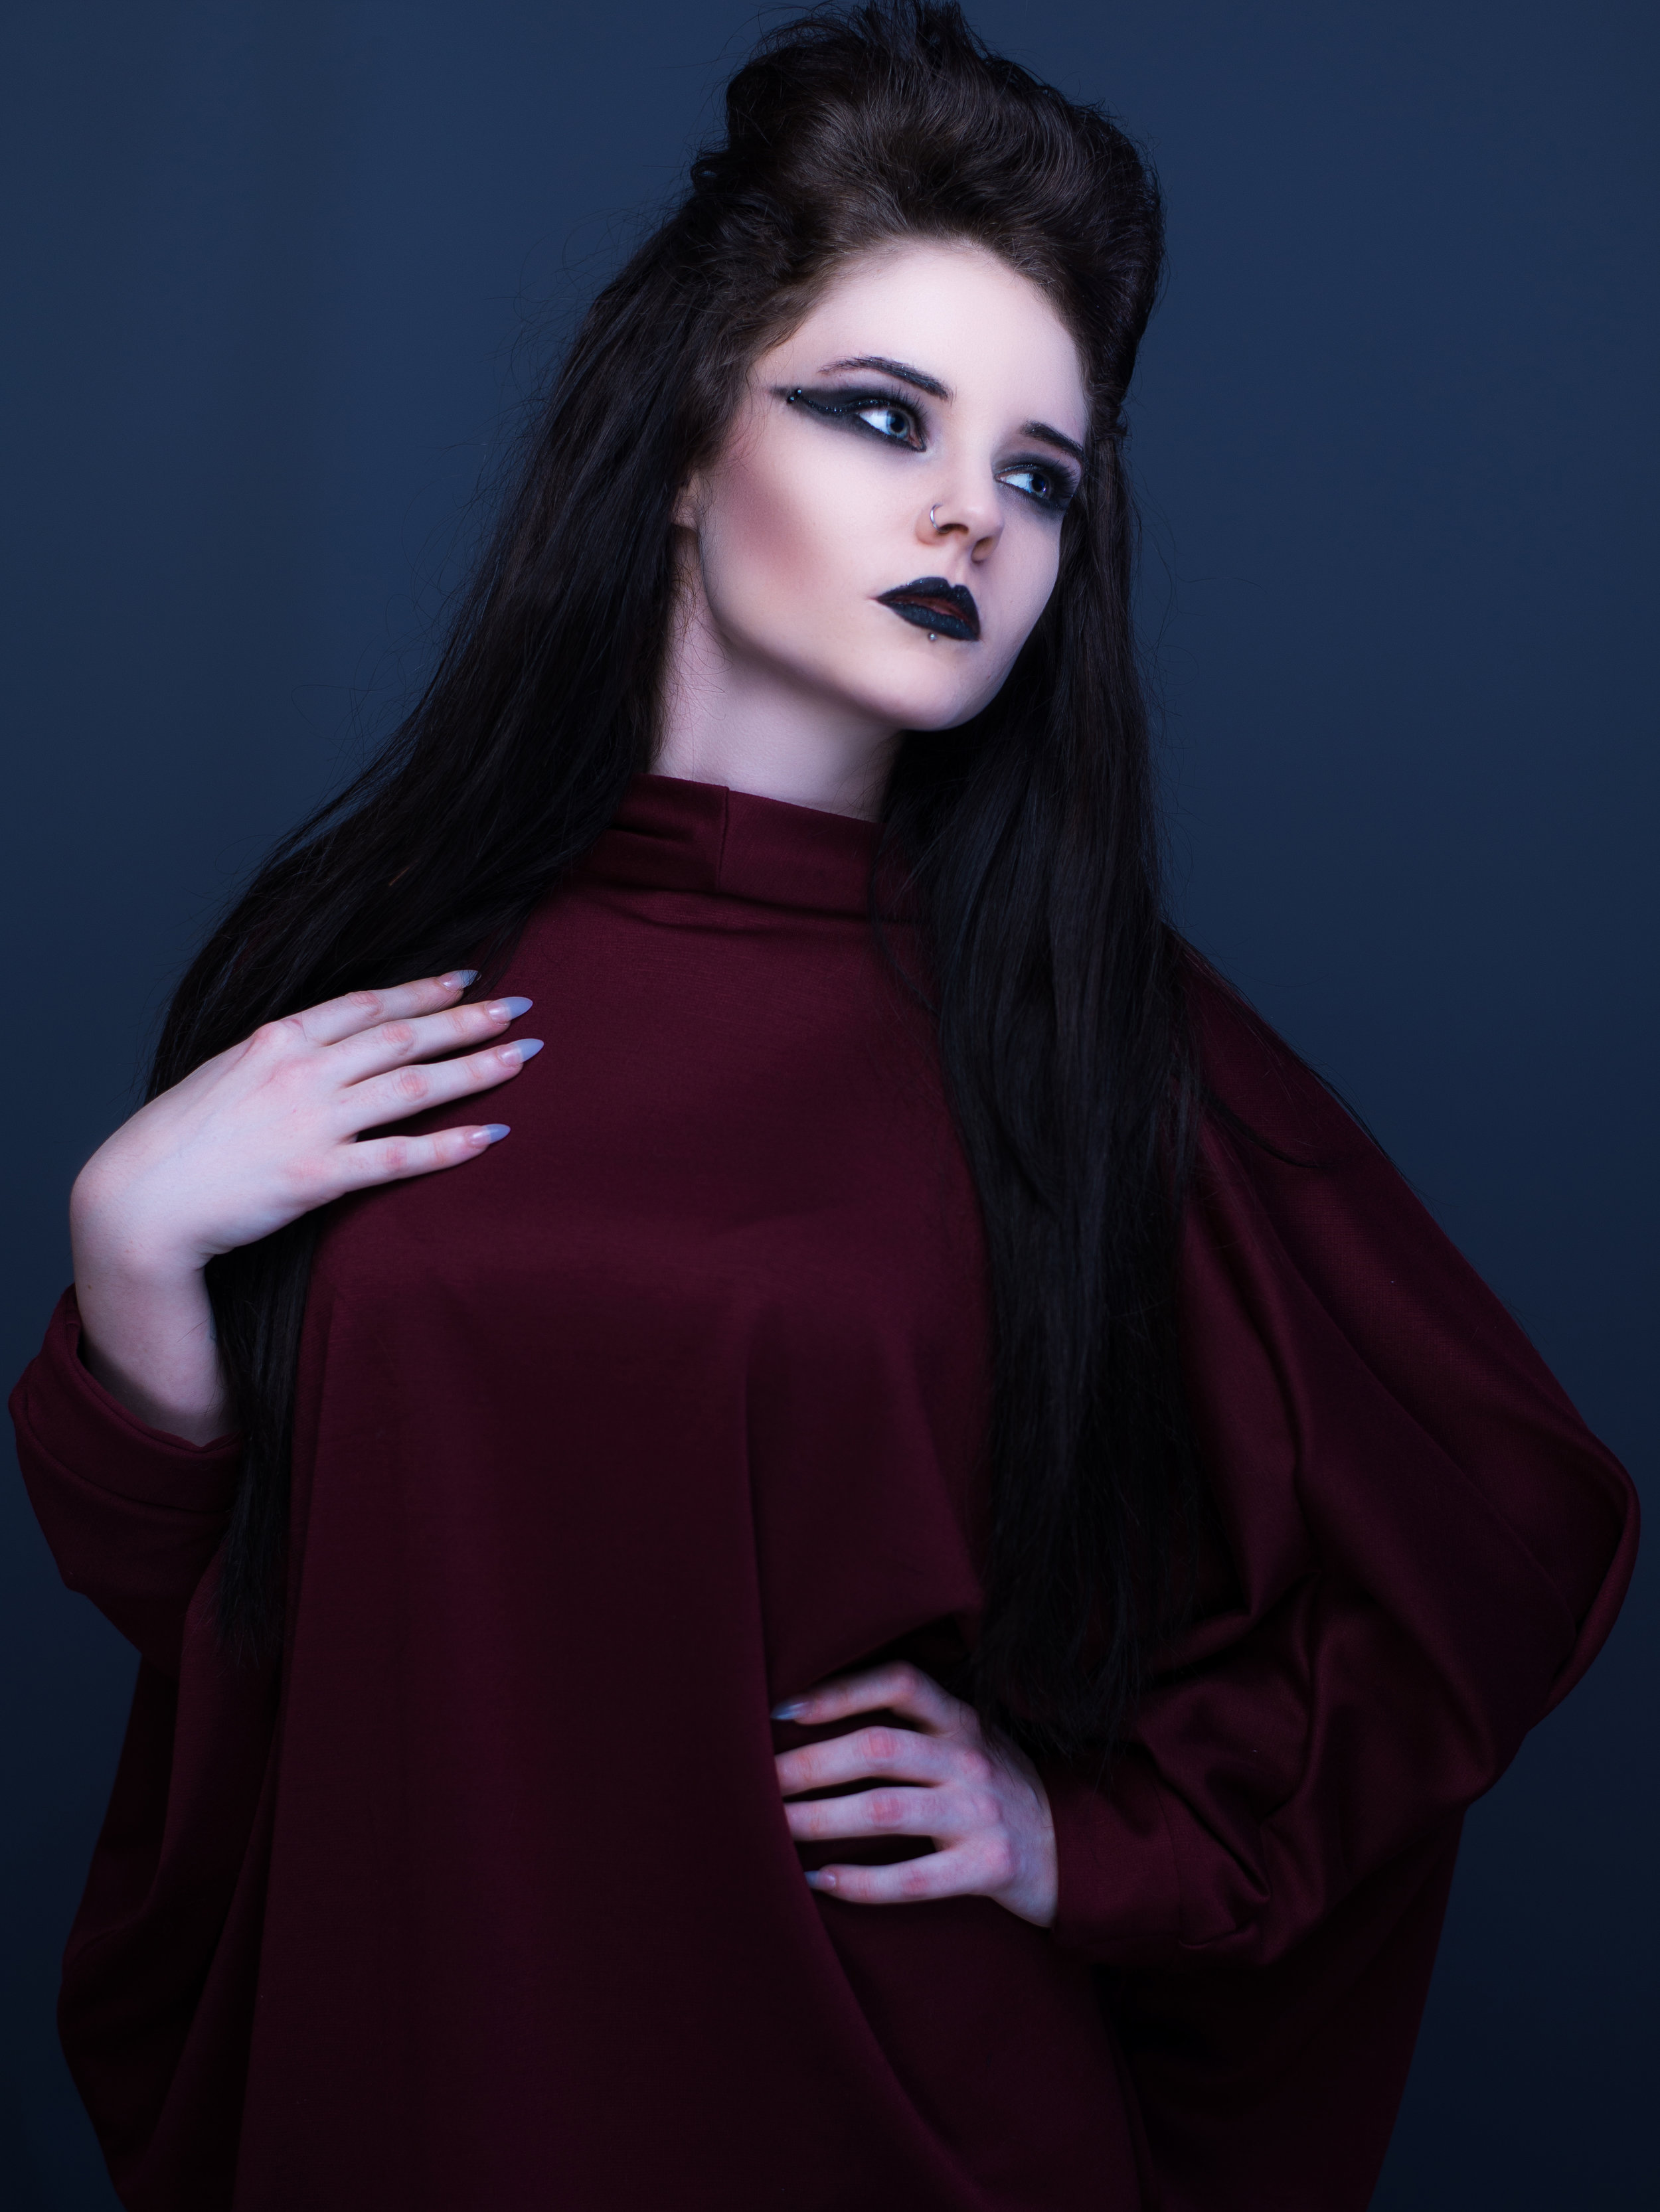 zaramia-ava-zaramiaava-leeds-fashion-designer-ethical-sustainable-tailored-minimalist-aya-burgundy-black-obi-belt-dress-versatile-drape-cowl-styling-studio-womenswear-models-photoshoot-13